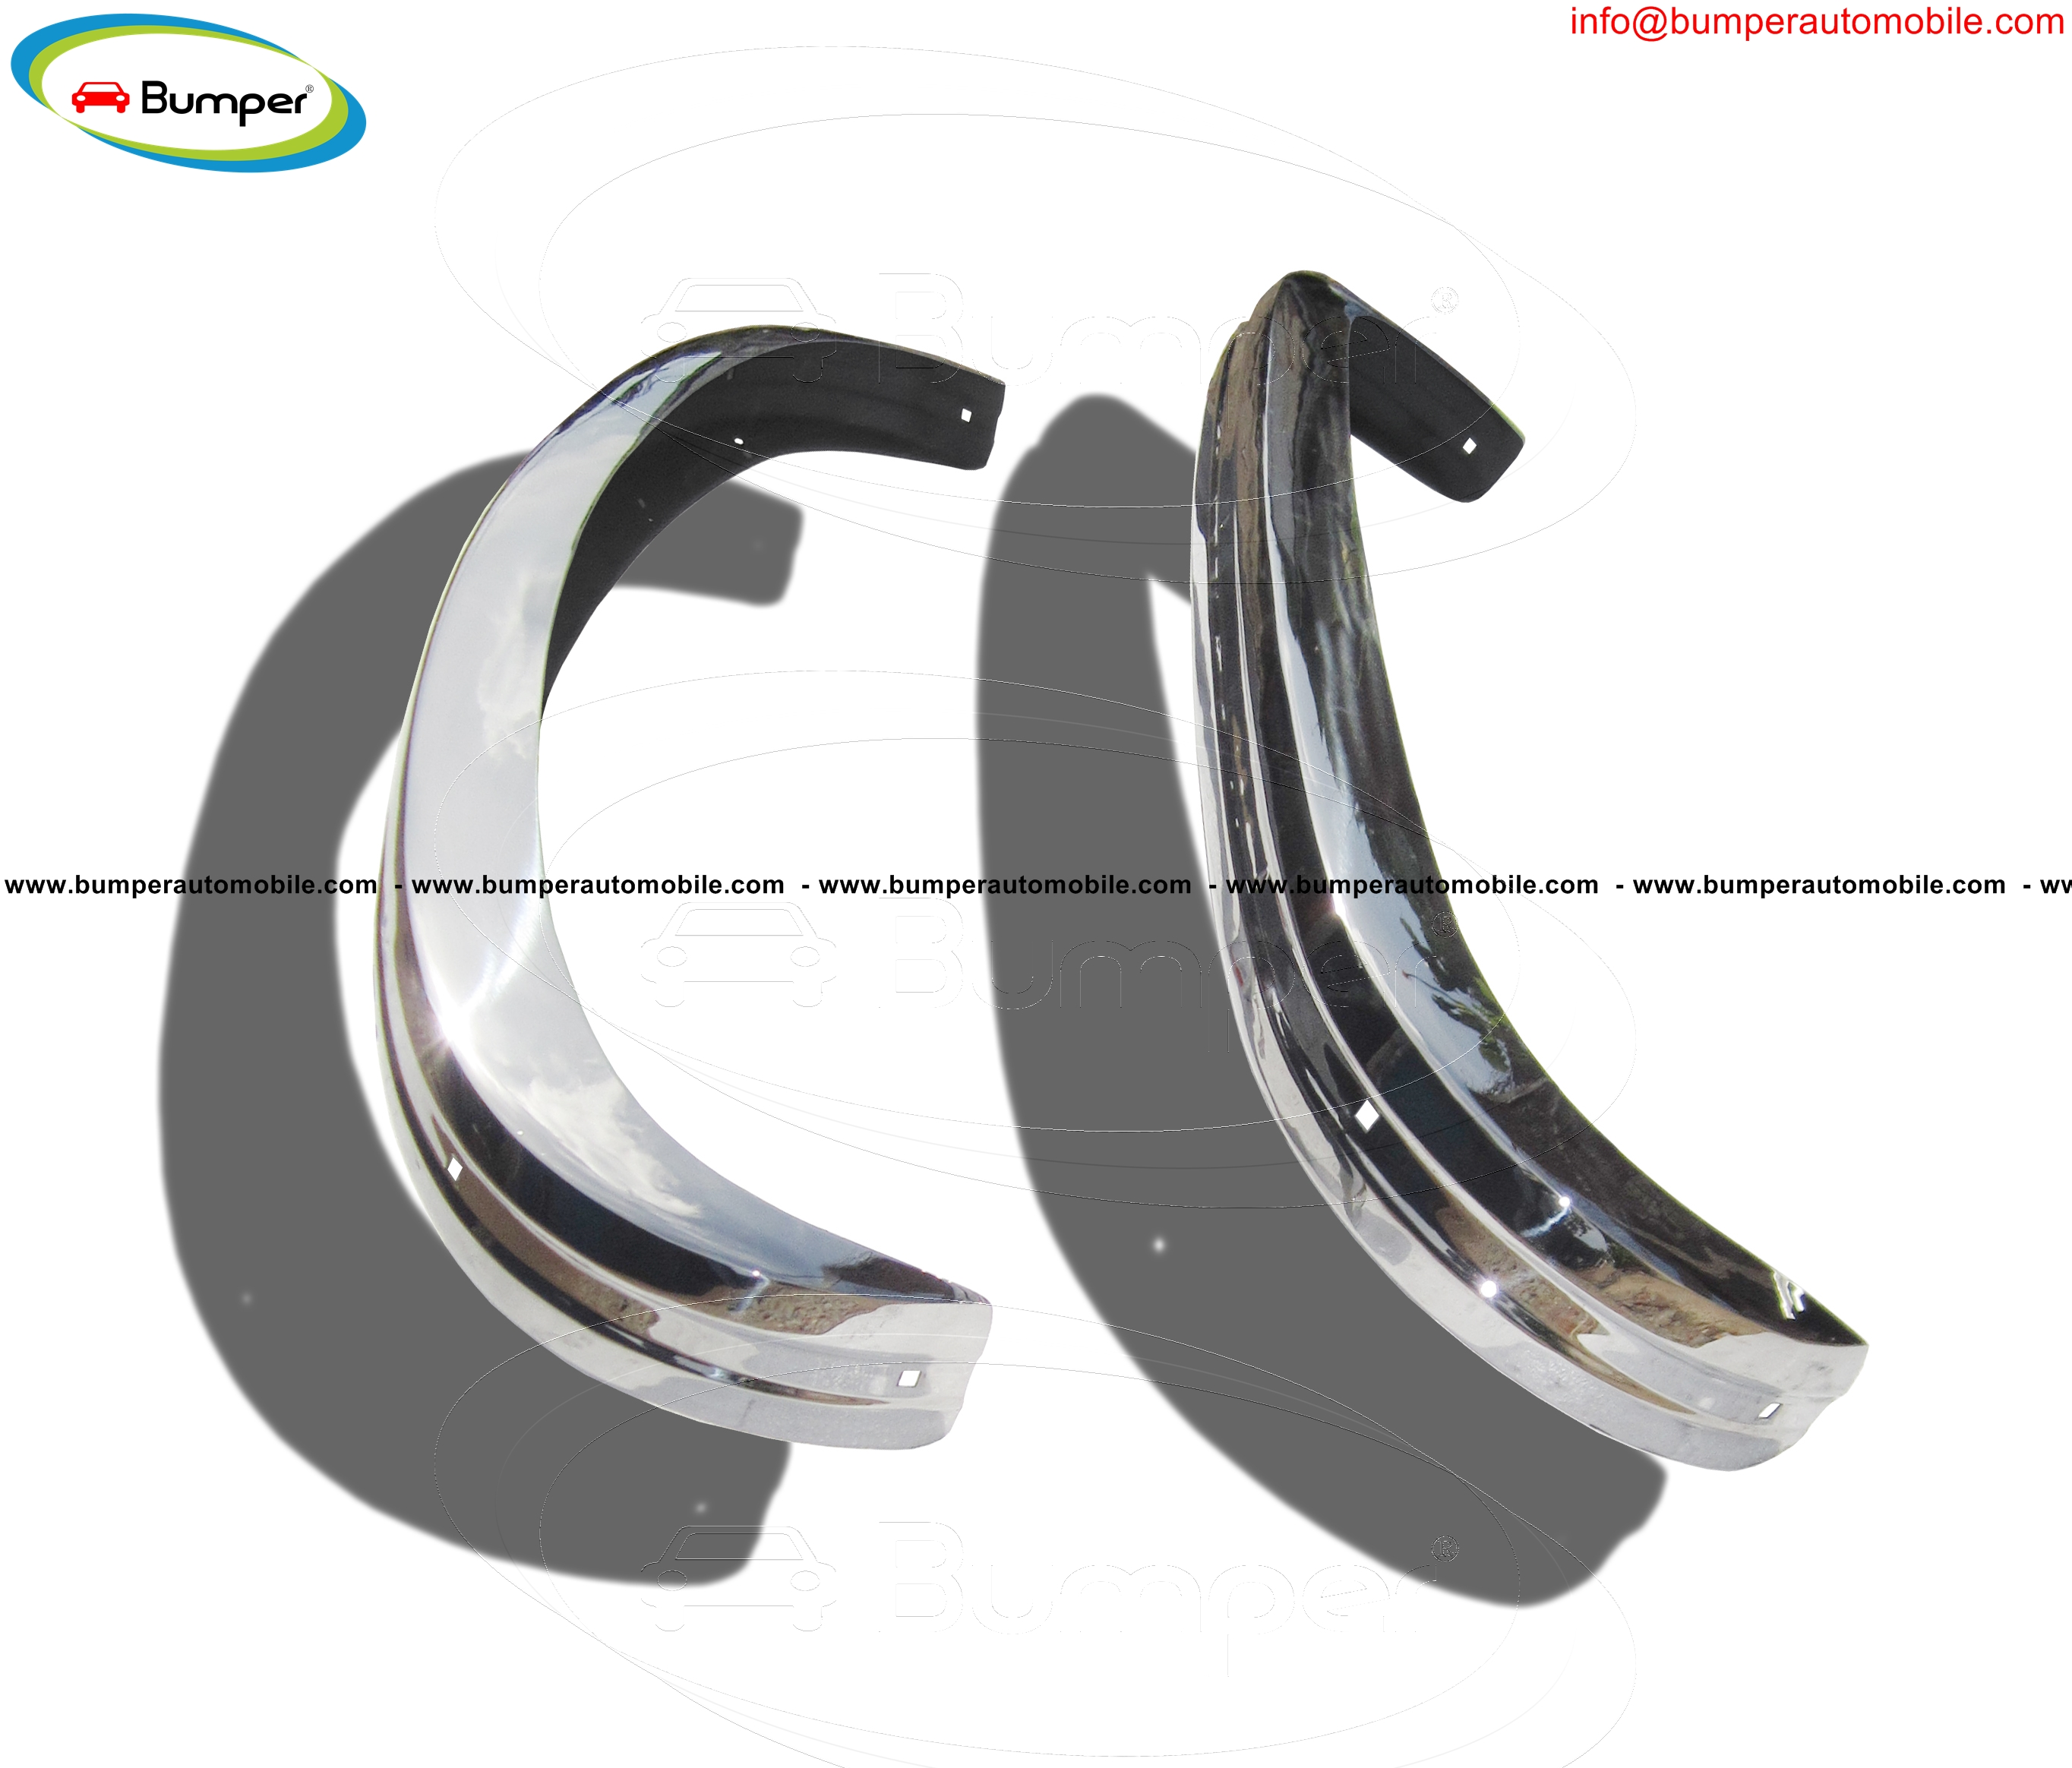 Full set bumper type Volkswagen Type 3 (1970-1973)